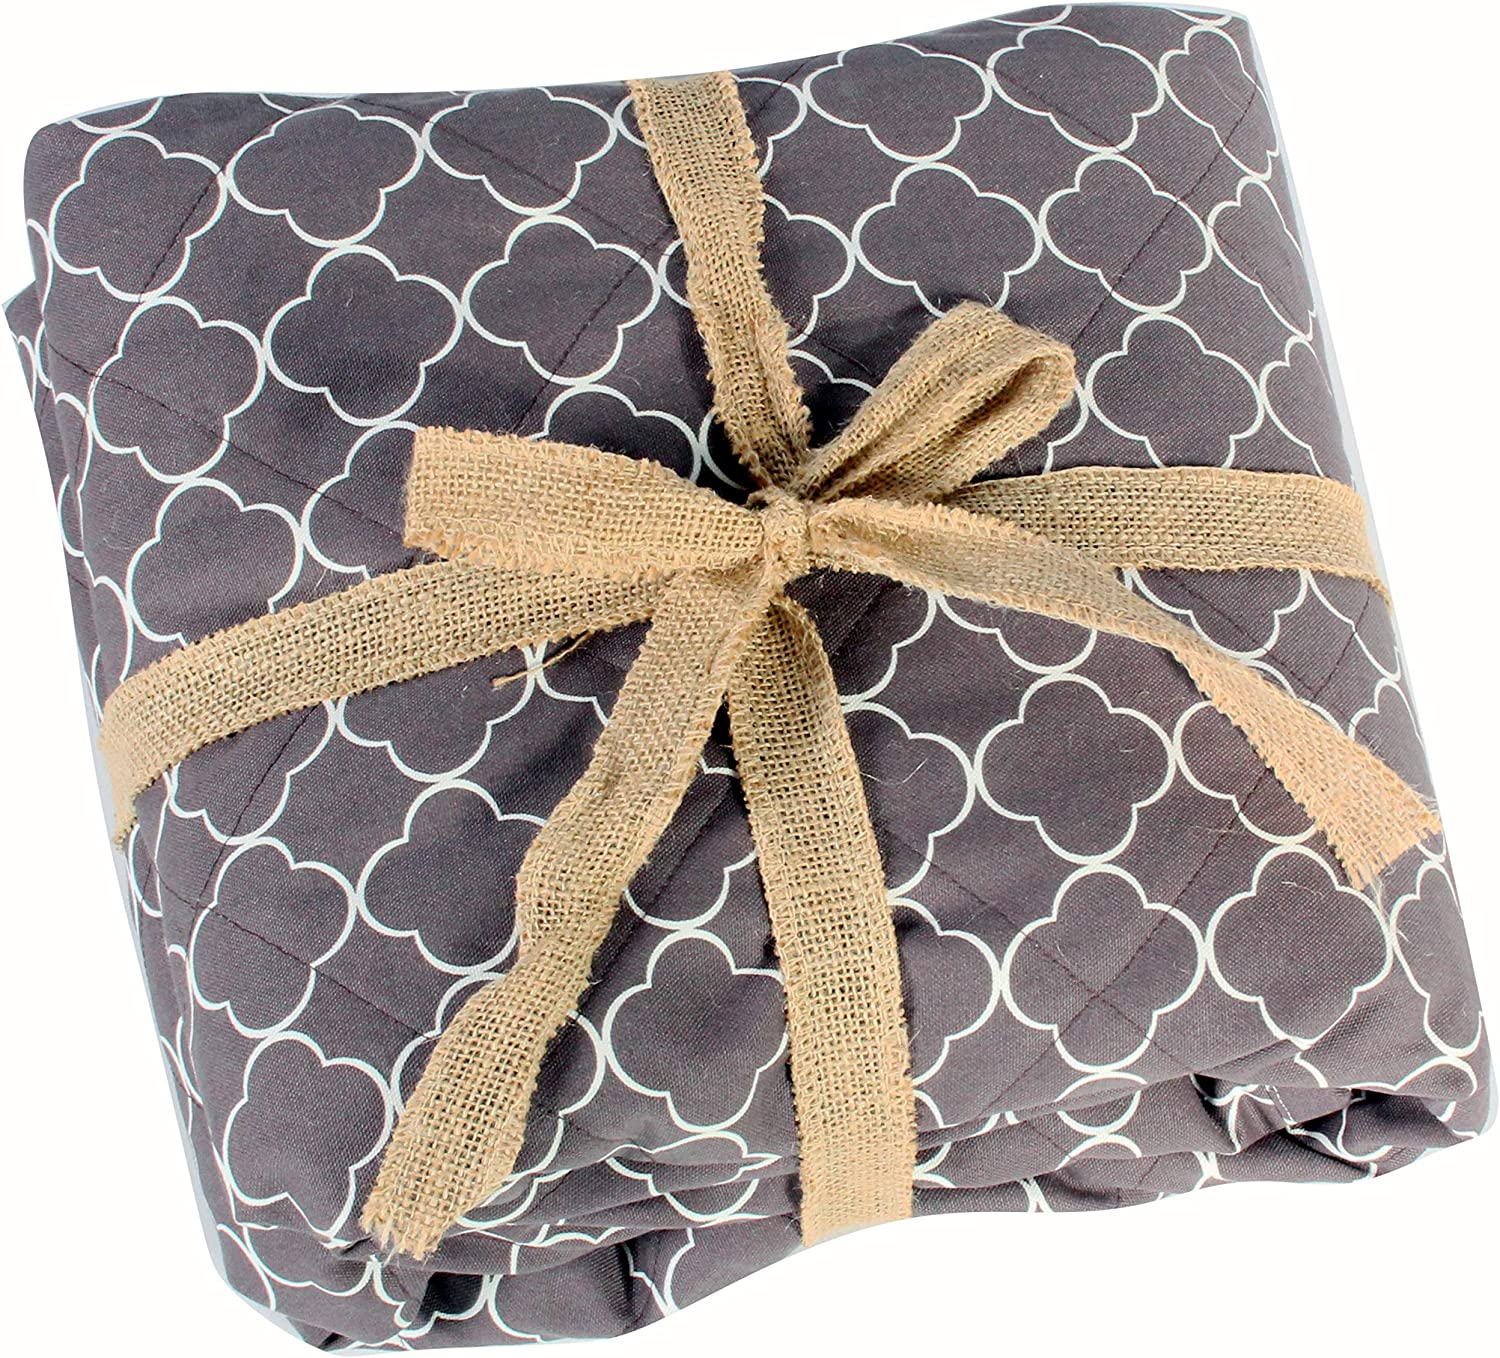 Molly Mutt Pet Blankets  Furniture Predection for Dogs and Cats